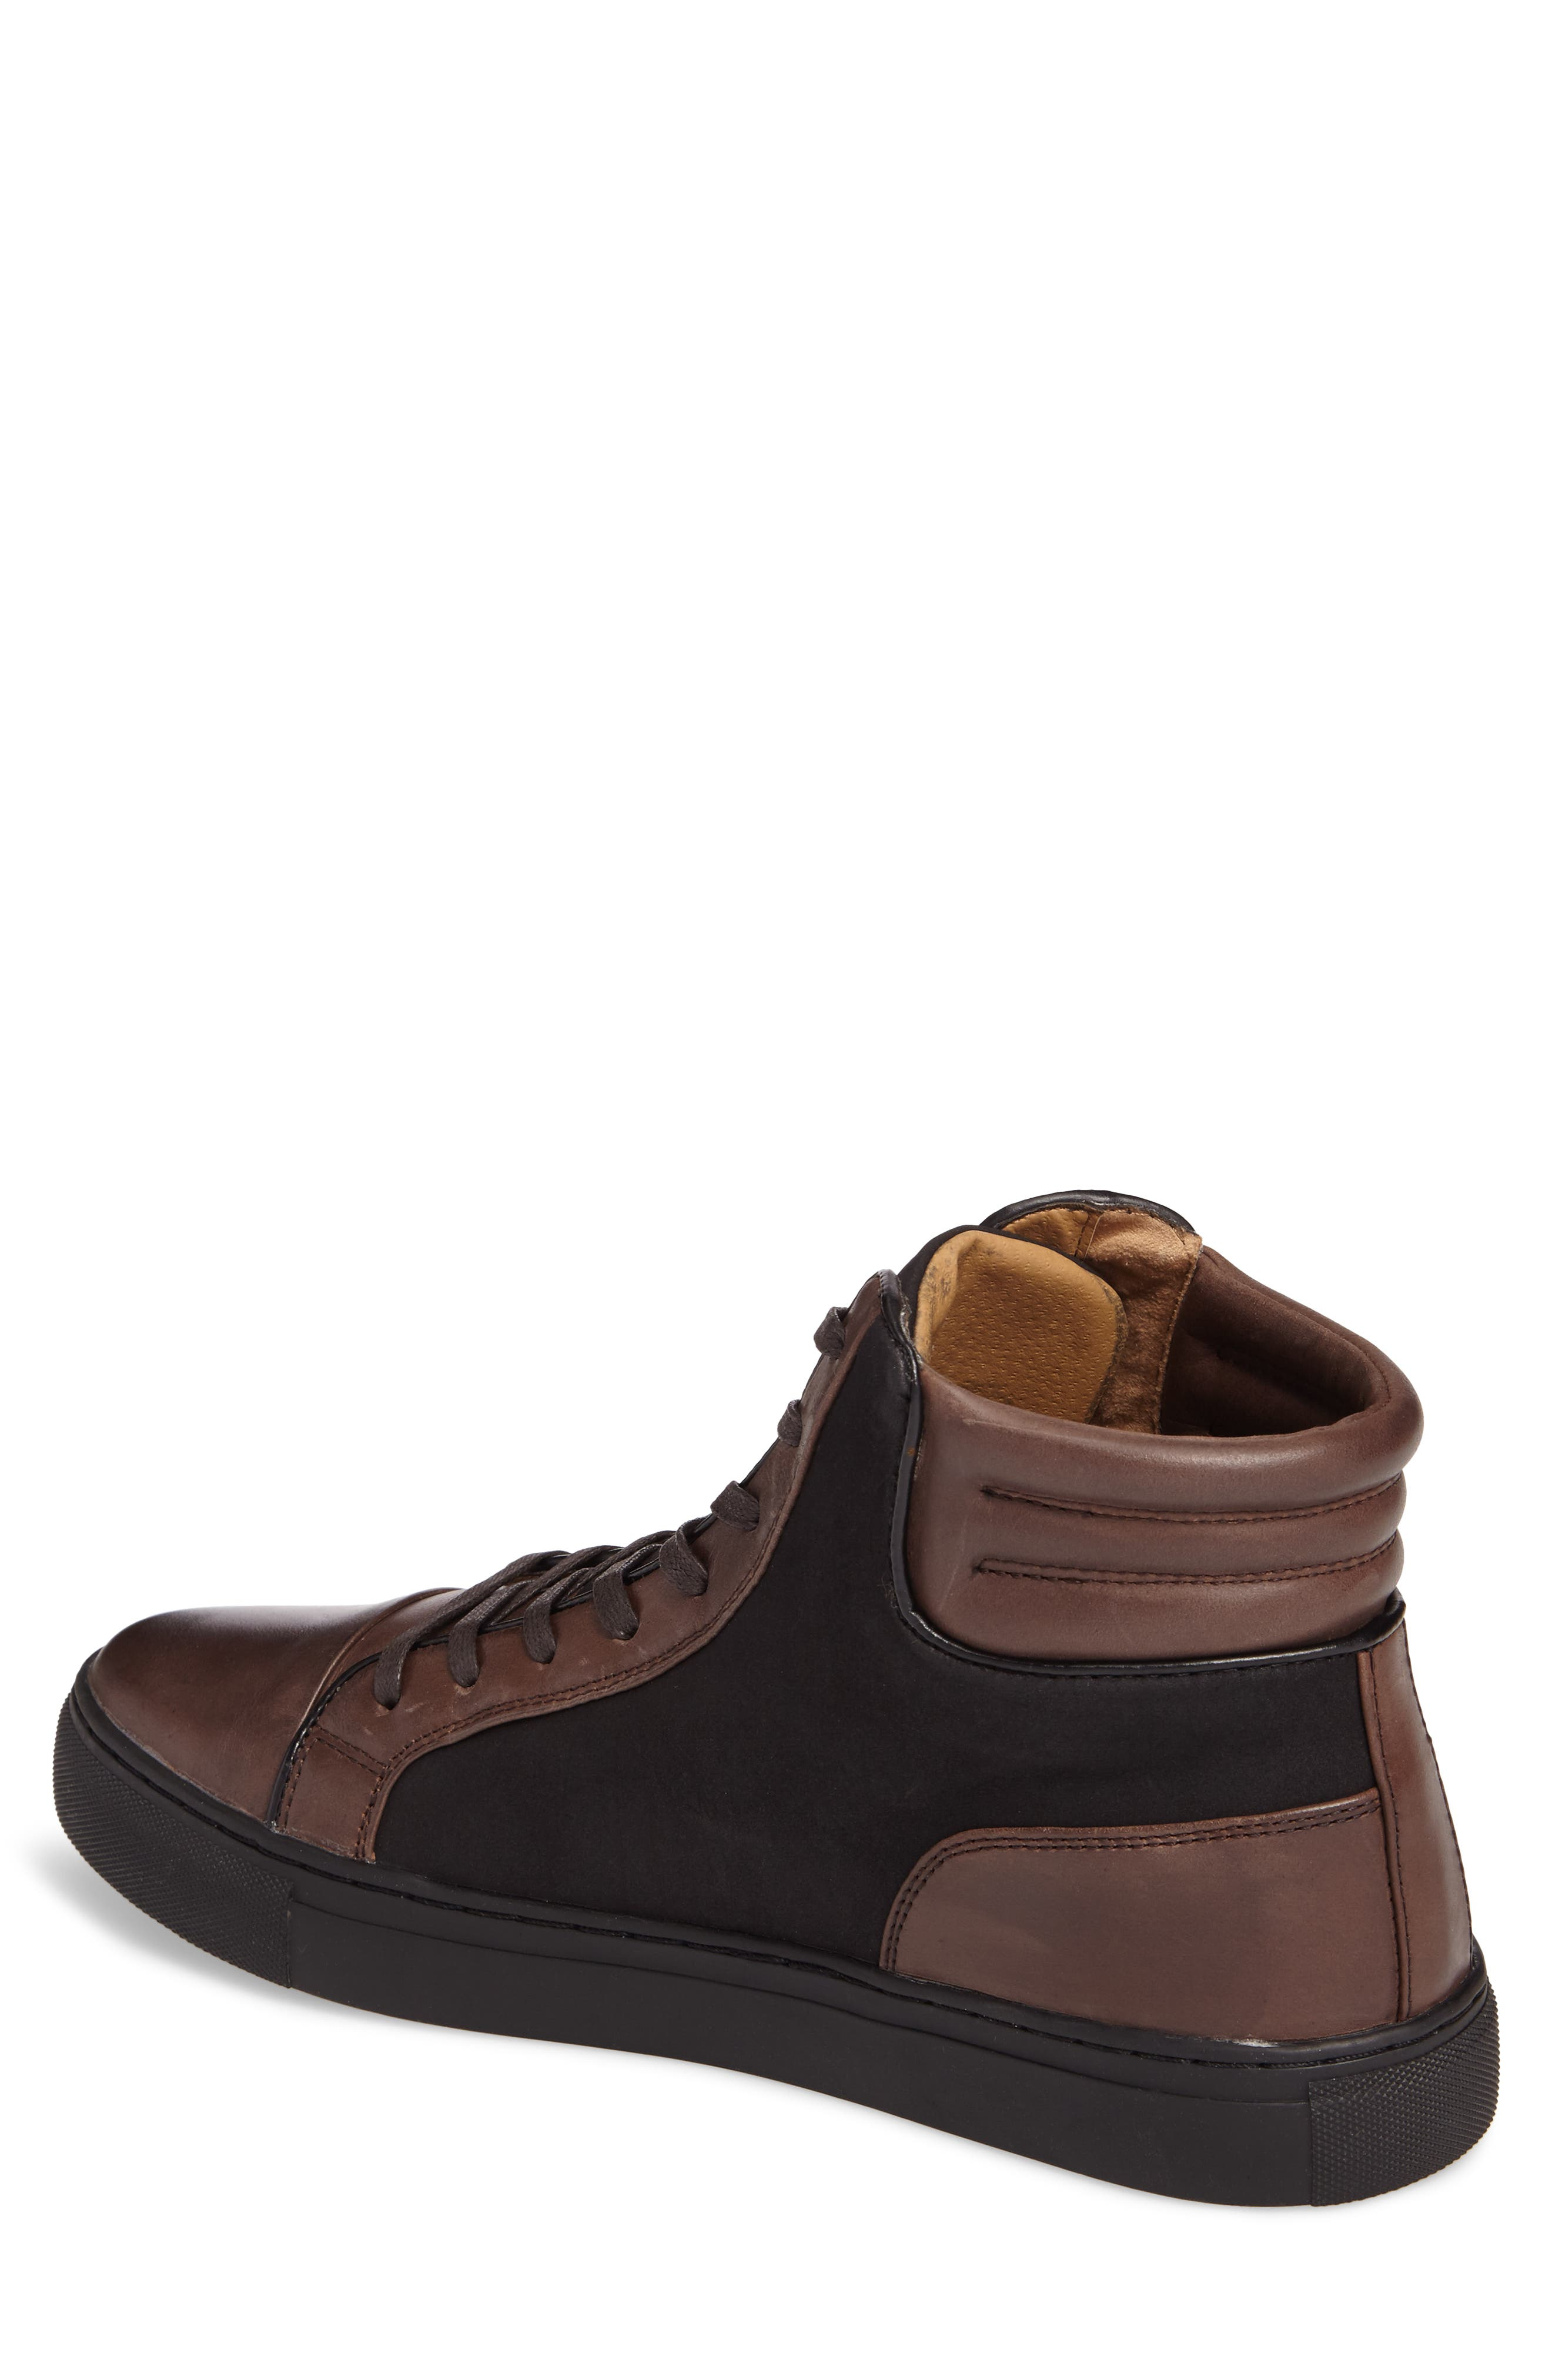 Kenneth Cole Reaction Sneaker,                             Alternate thumbnail 2, color,                             Brown/ Black